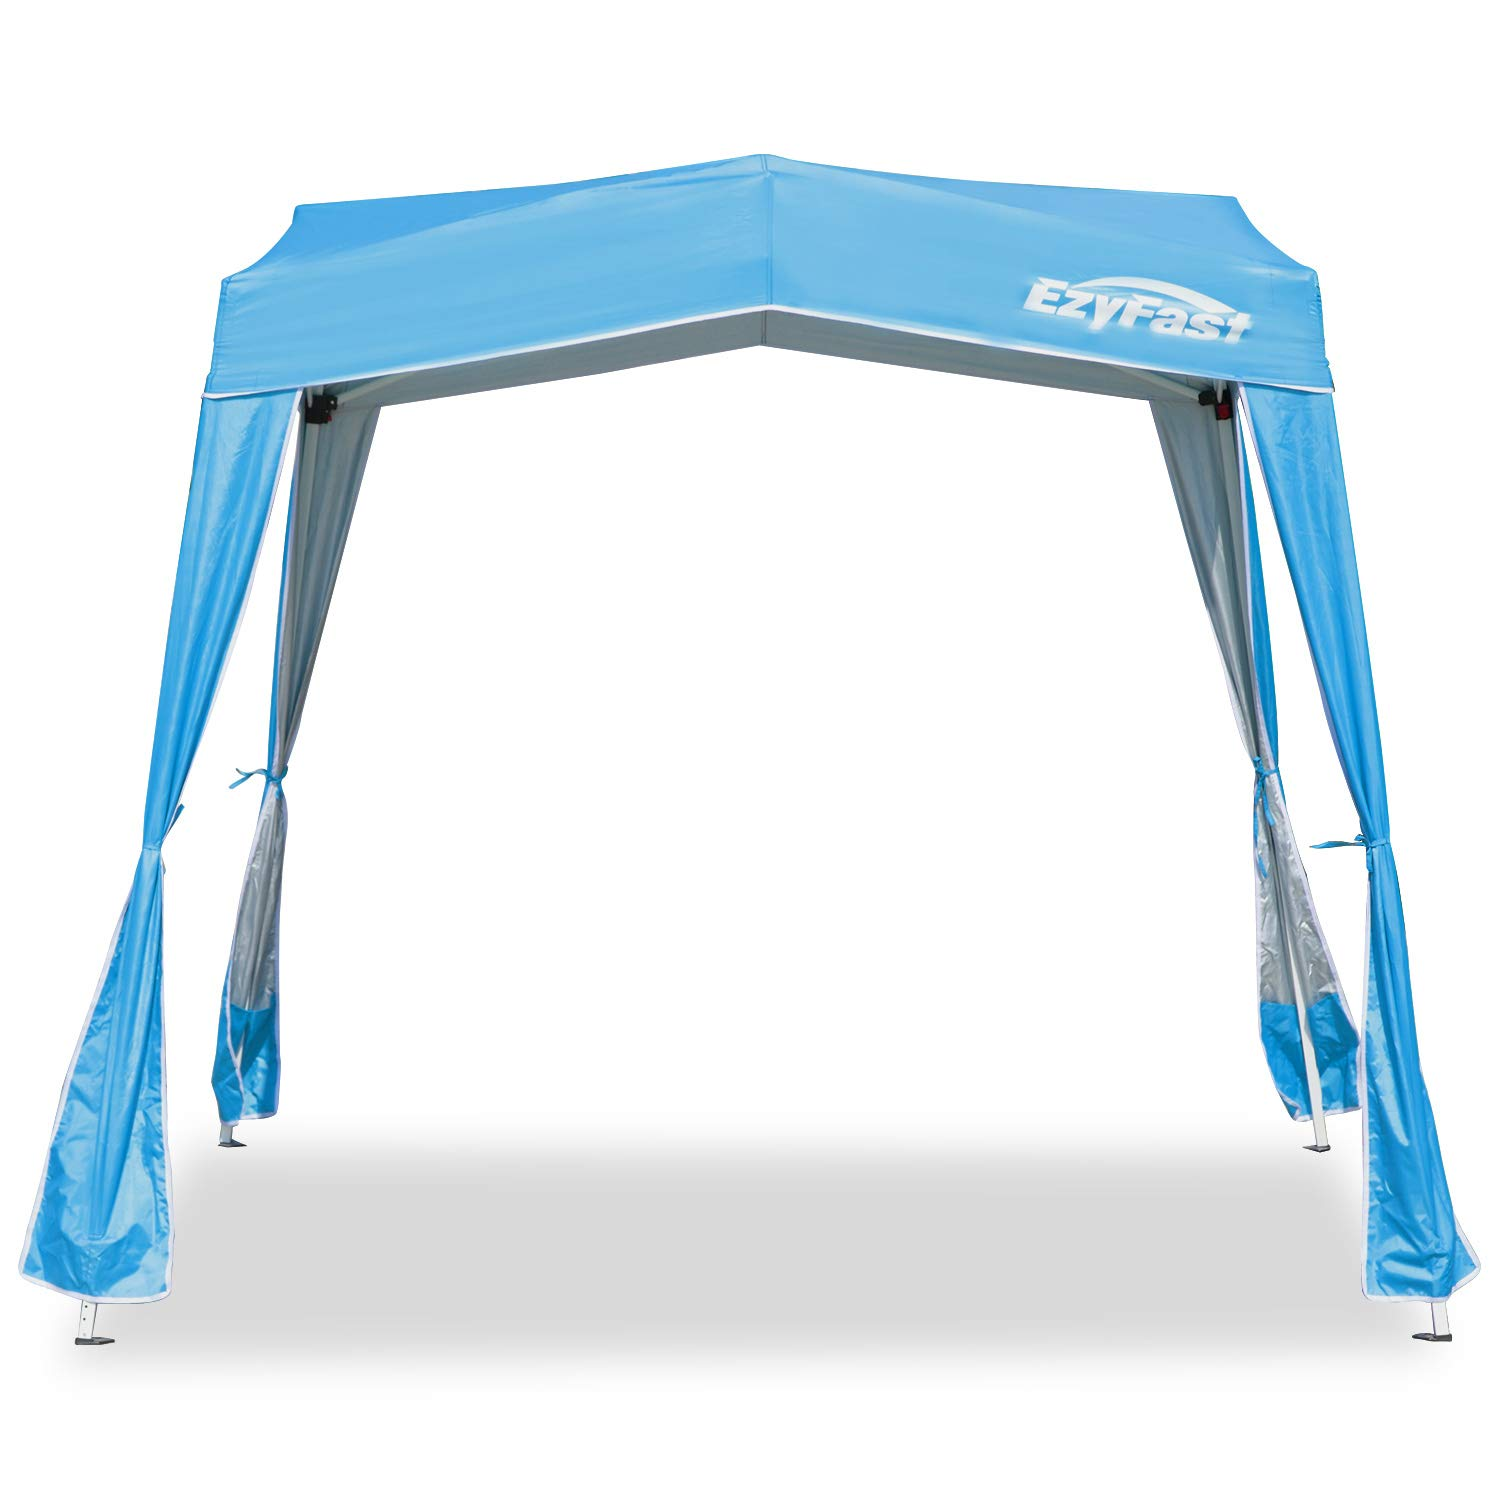 EzyFast Resort Style 10ft x 10ft Base / 8ft x 8ft Top Pop Up Gazebo, Portable Instant Canopy with Carry Bag, Sports Cabana for Hiking, Camping, Fishing, Picnic, Family Outings